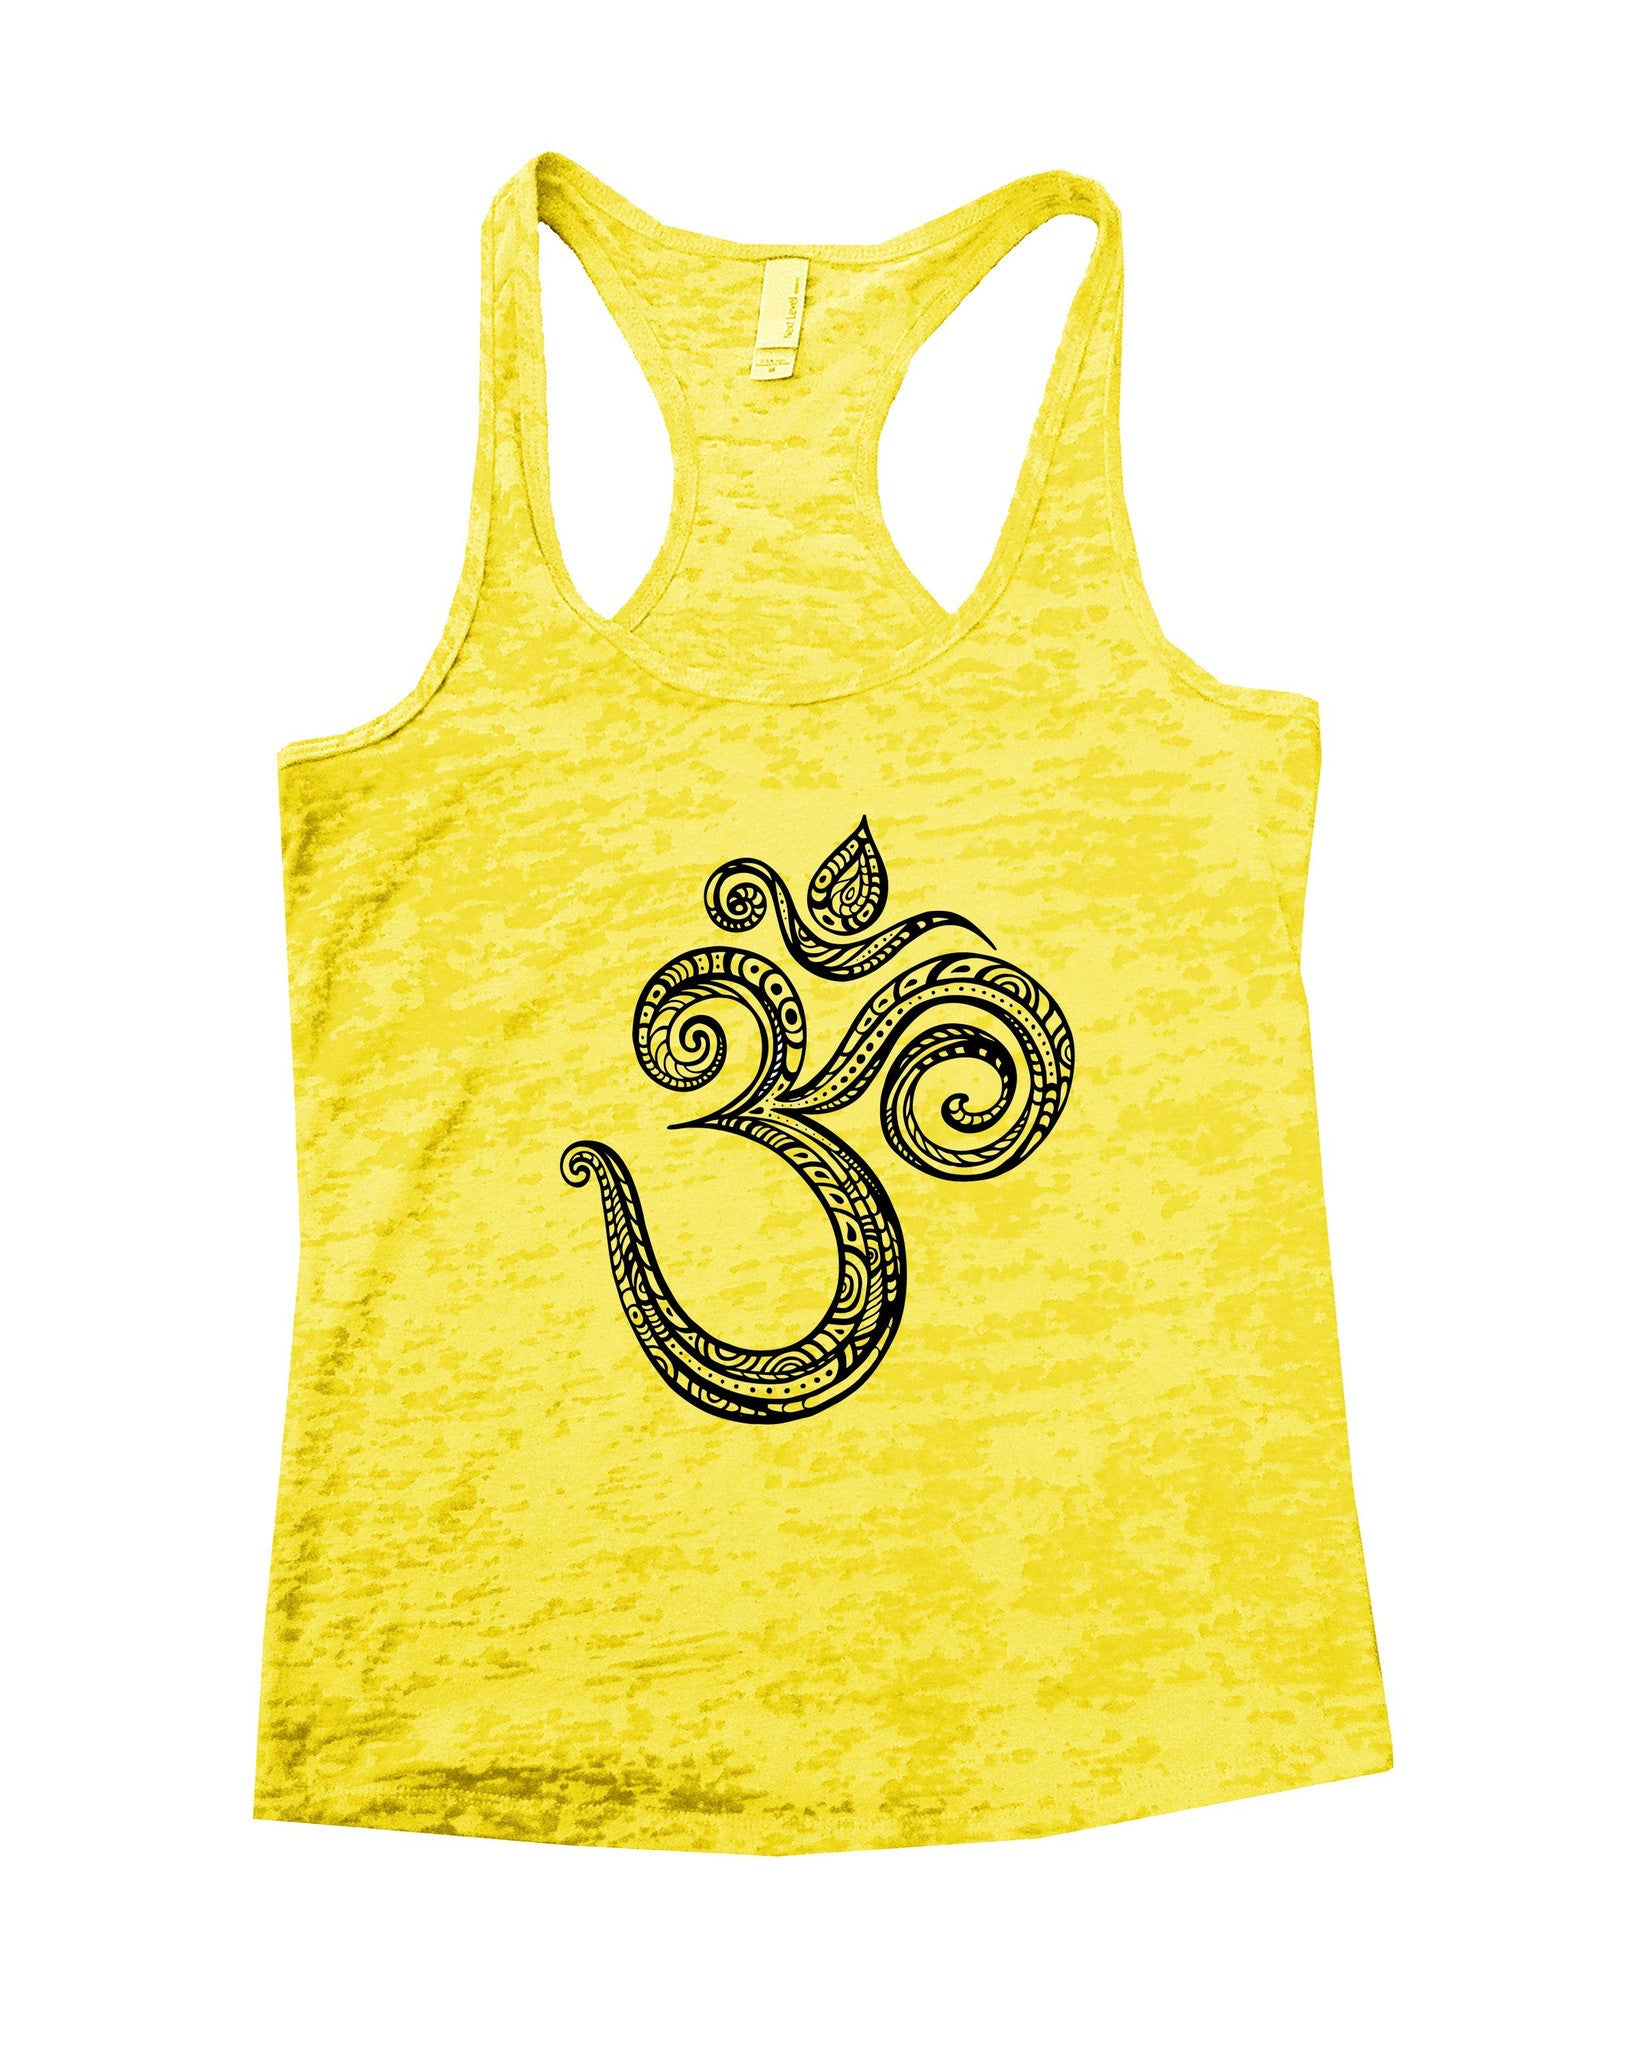 Ohm Burnout Tank Top By BurnoutTankTops.com - 908 - Funny Shirts Tank Tops Burnouts and Triblends  - 7